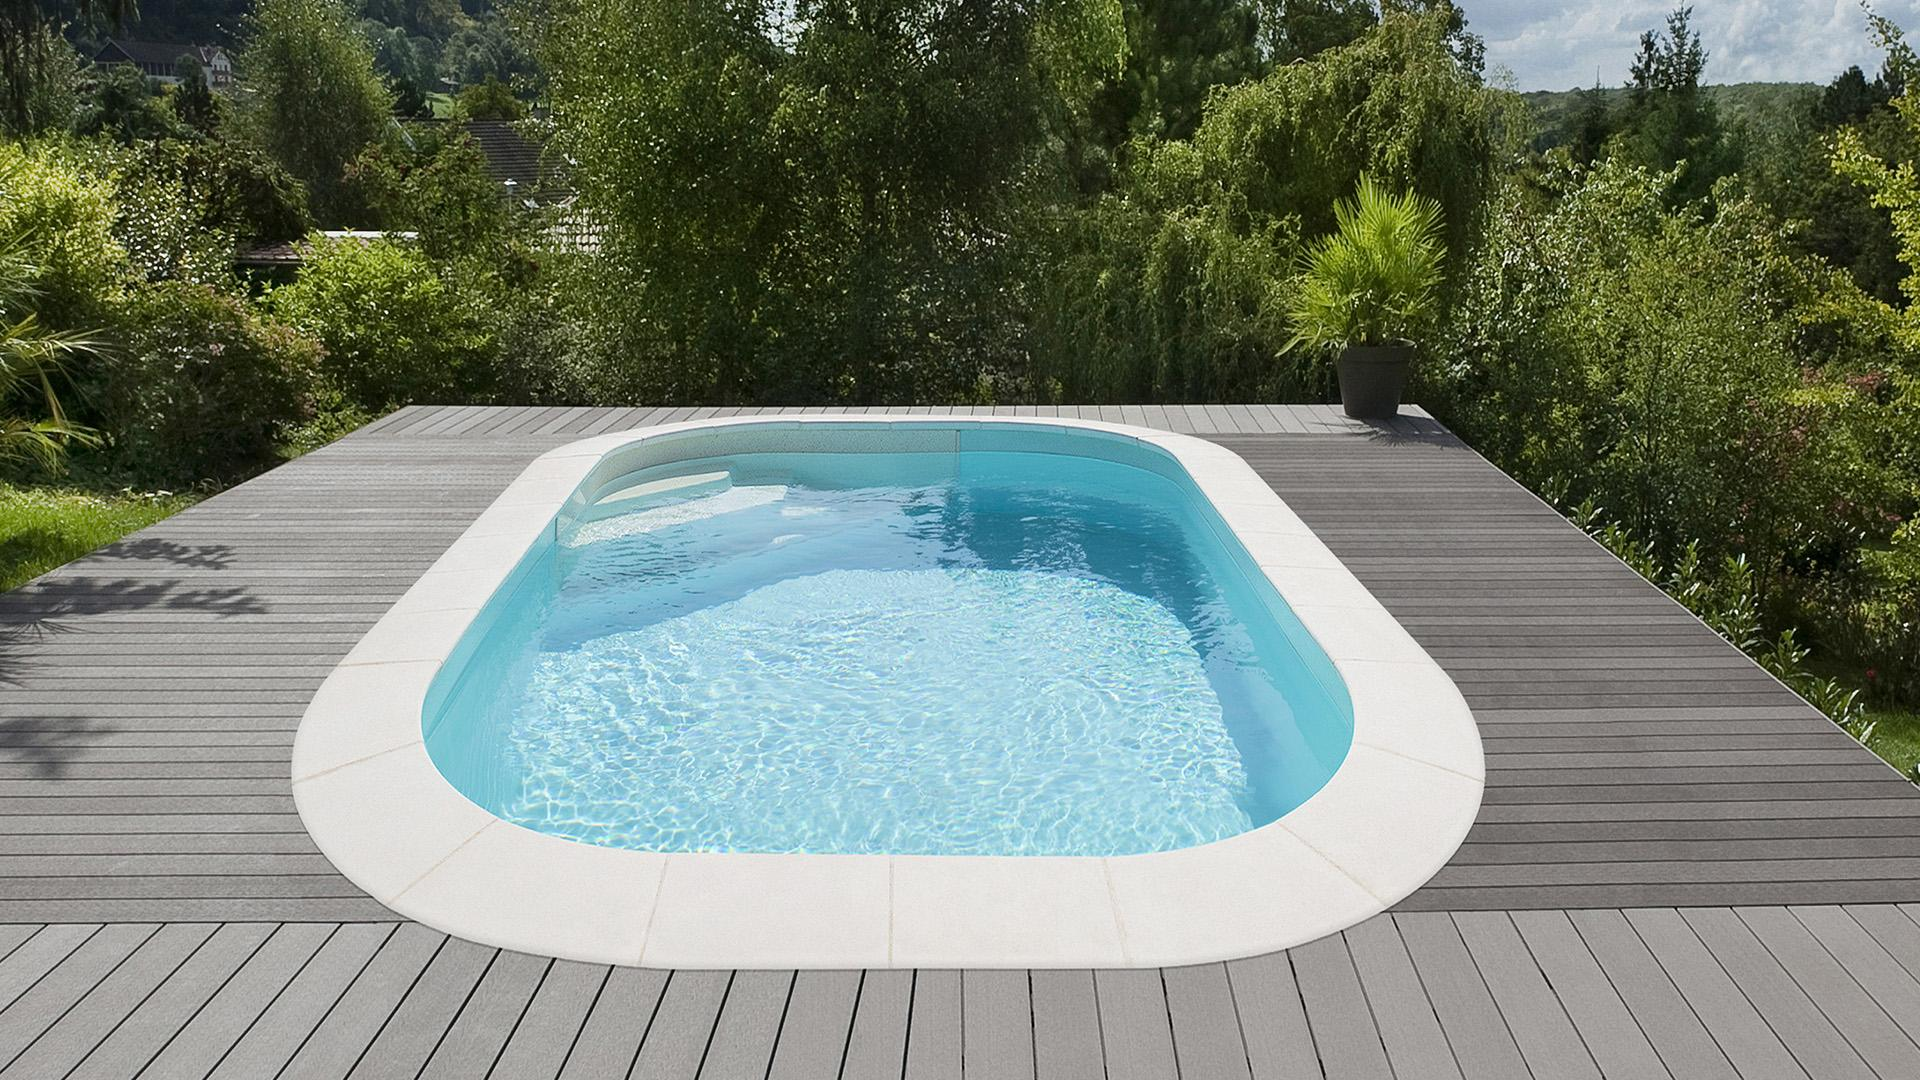 Jacuzzi Pool Dimensions Abc Pool Everything For Your Pool Palmera Denia Moraira